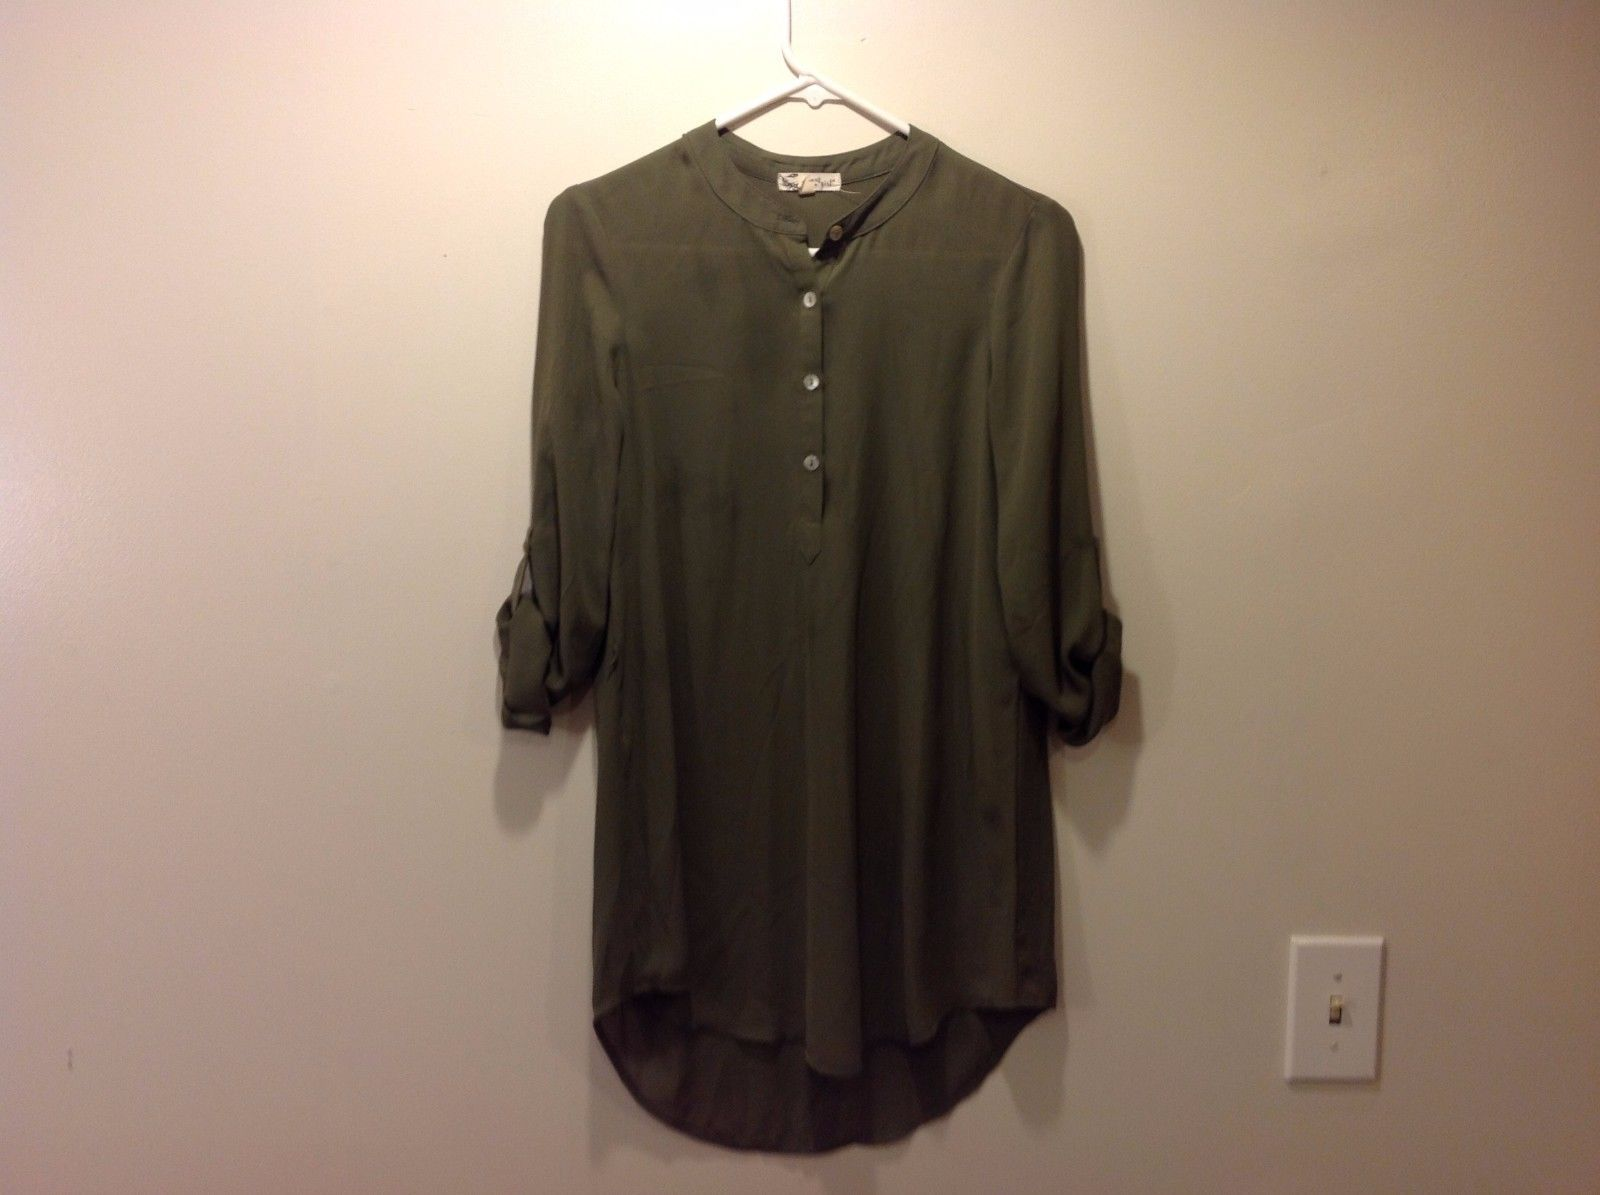 About A Girl Olive Green Shirt Dress Sz XS